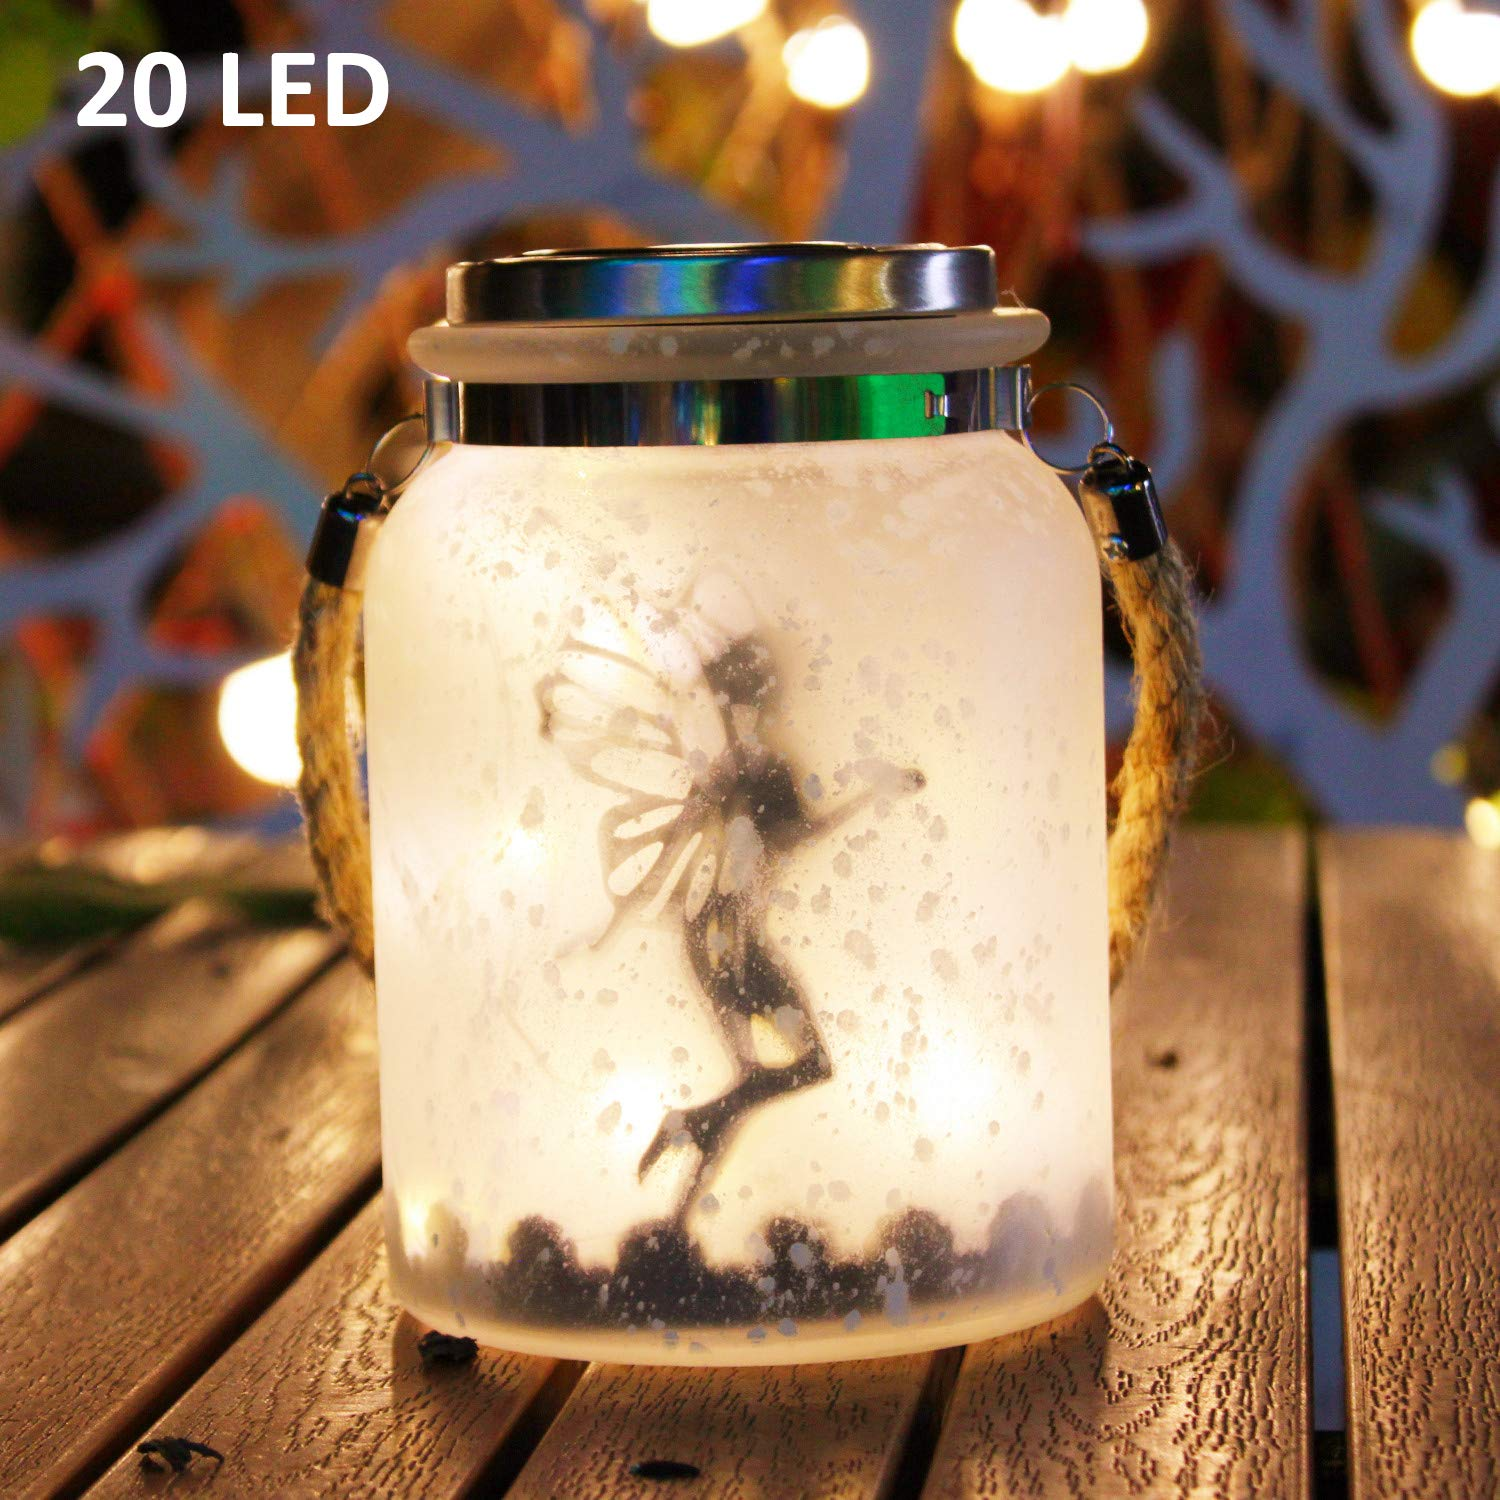 Kaixoxin Jar Solar Lights Outdoor Decorative, White Frosted Glass Hanging Solar Lantern Angel Lights, 20 Warm White Mini LED Fairy String Lights (6.25'' Tall)